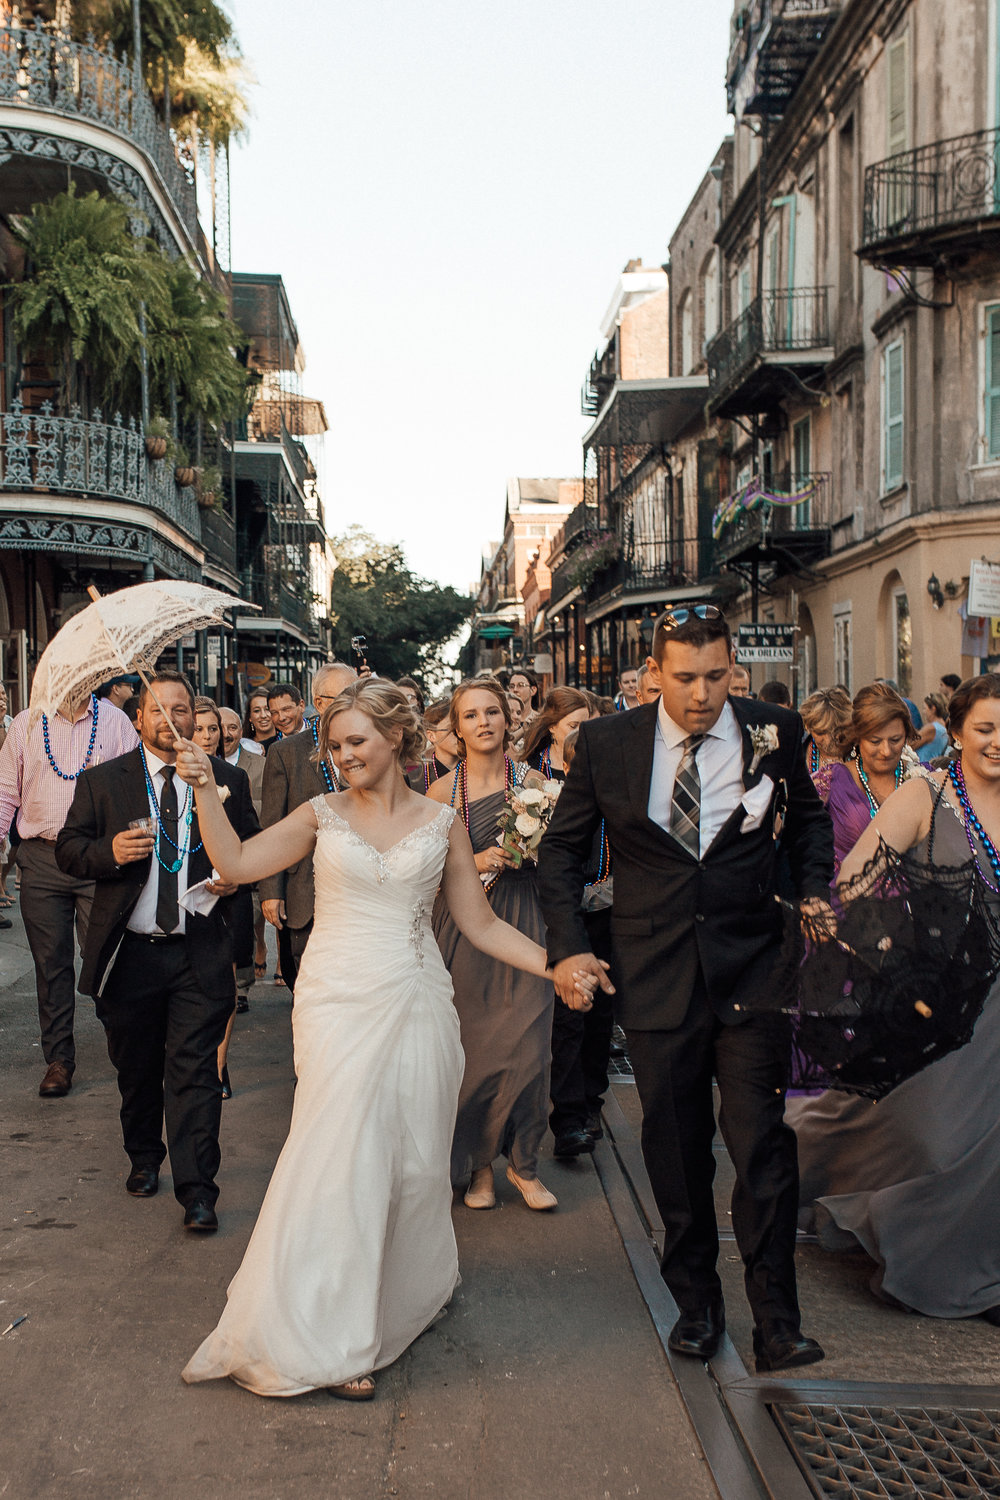 new-orleans-wedding-the-pharmacy-museum-nola-wedding-venue-cassie-cook-photography-memphis-wedding-photographer-destination-wedding